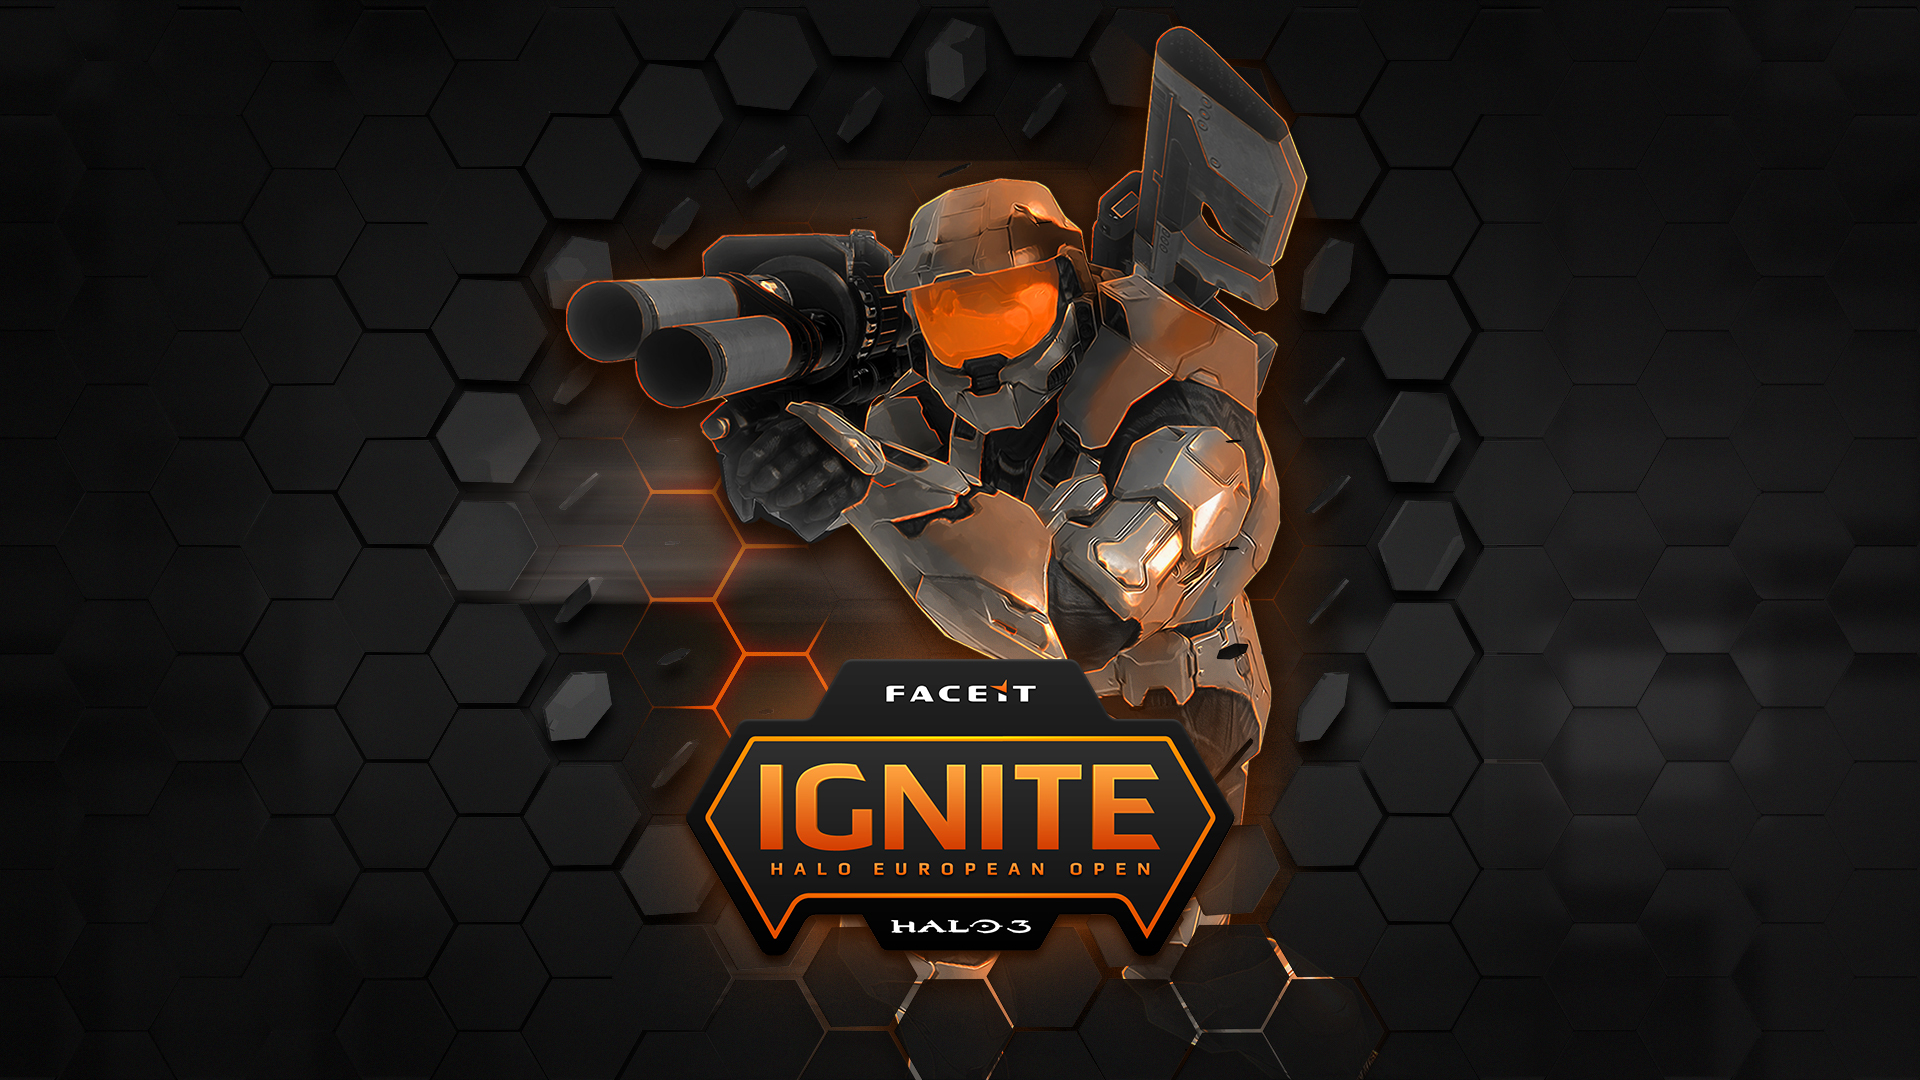 Faceit Ignite: Halo European Open taking place in August